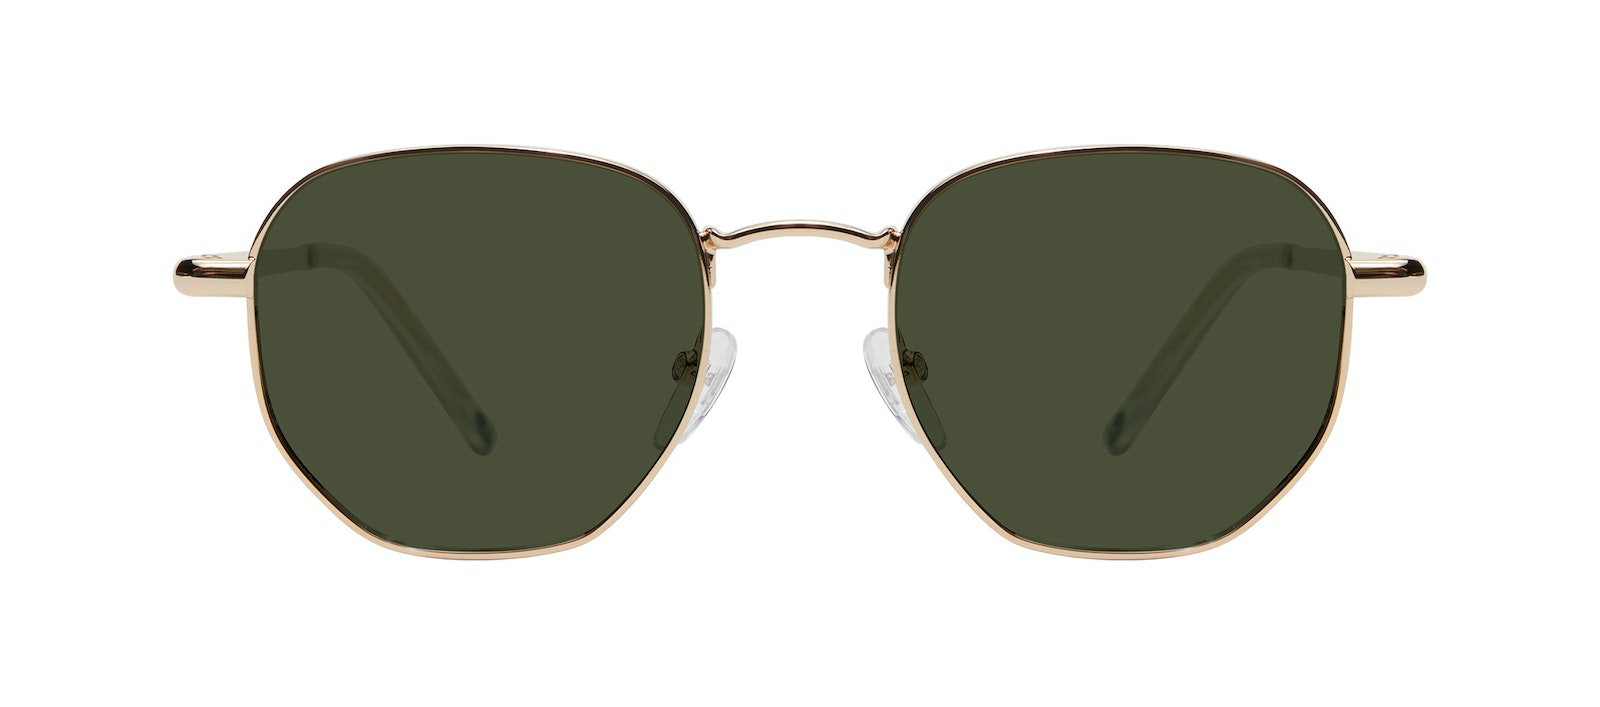 Affordable Fashion Glasses Round Sunglasses Men Women Aura Gold Front